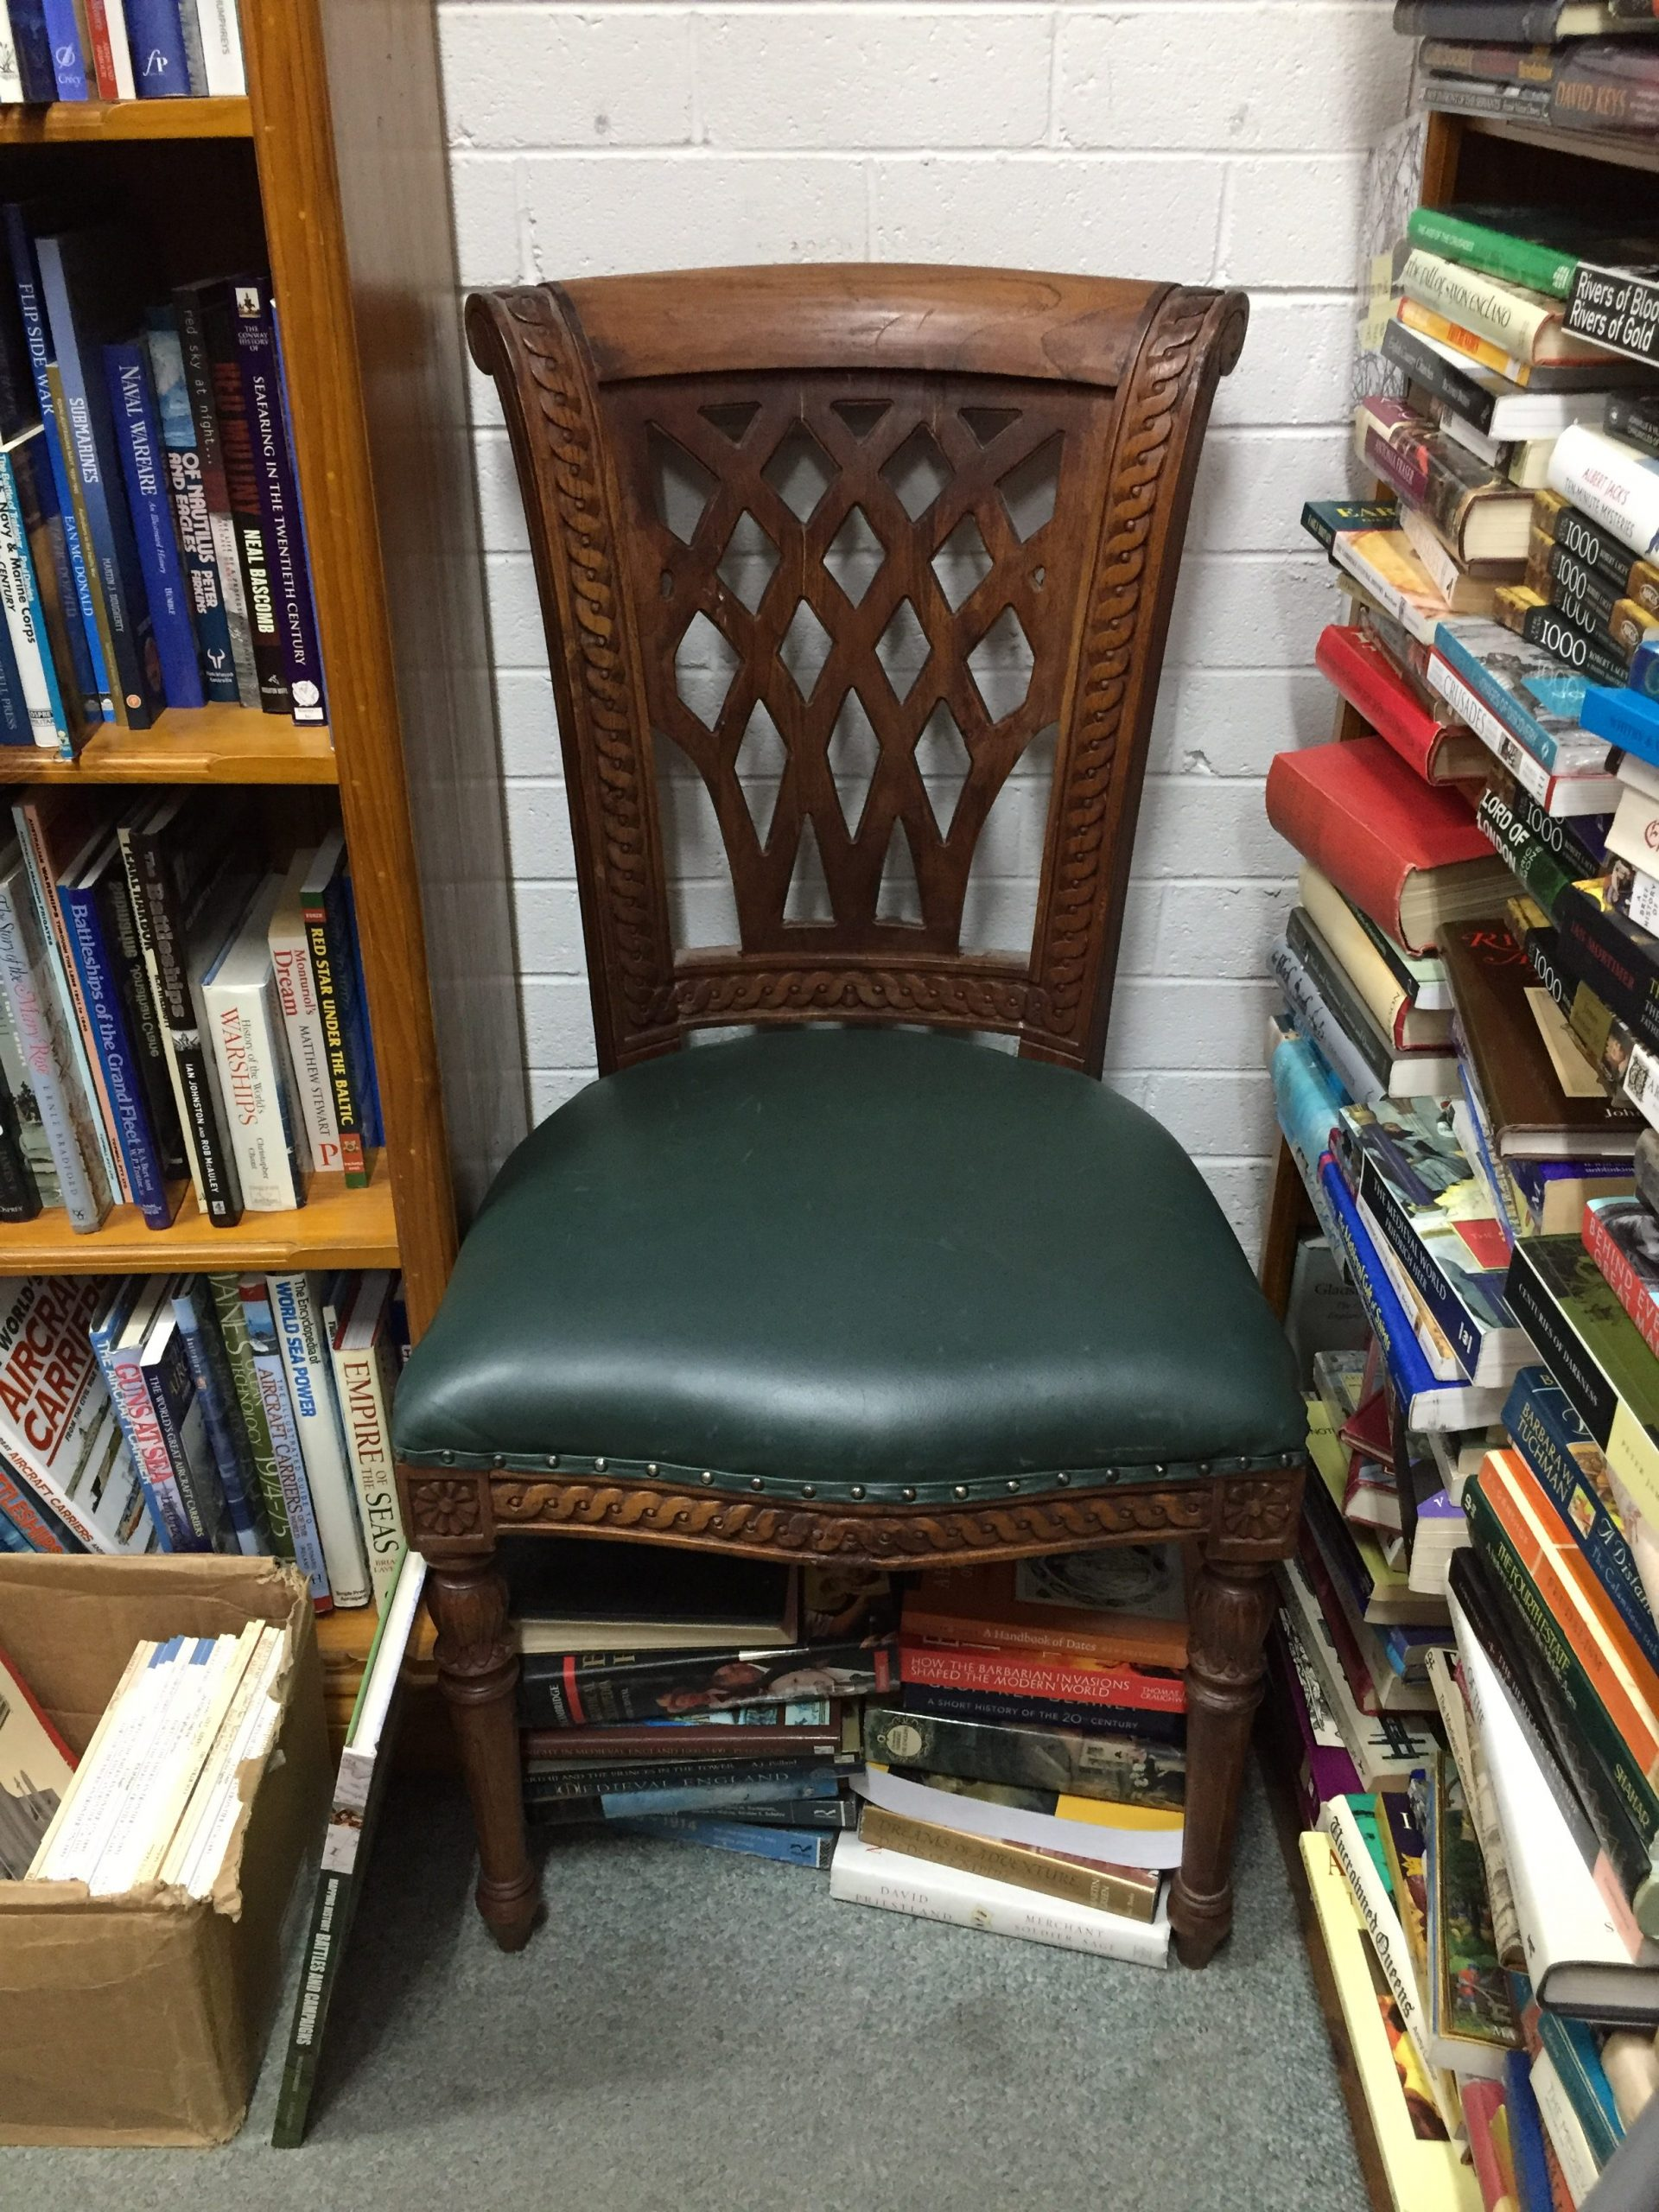 wooden-chair-in-book-shop